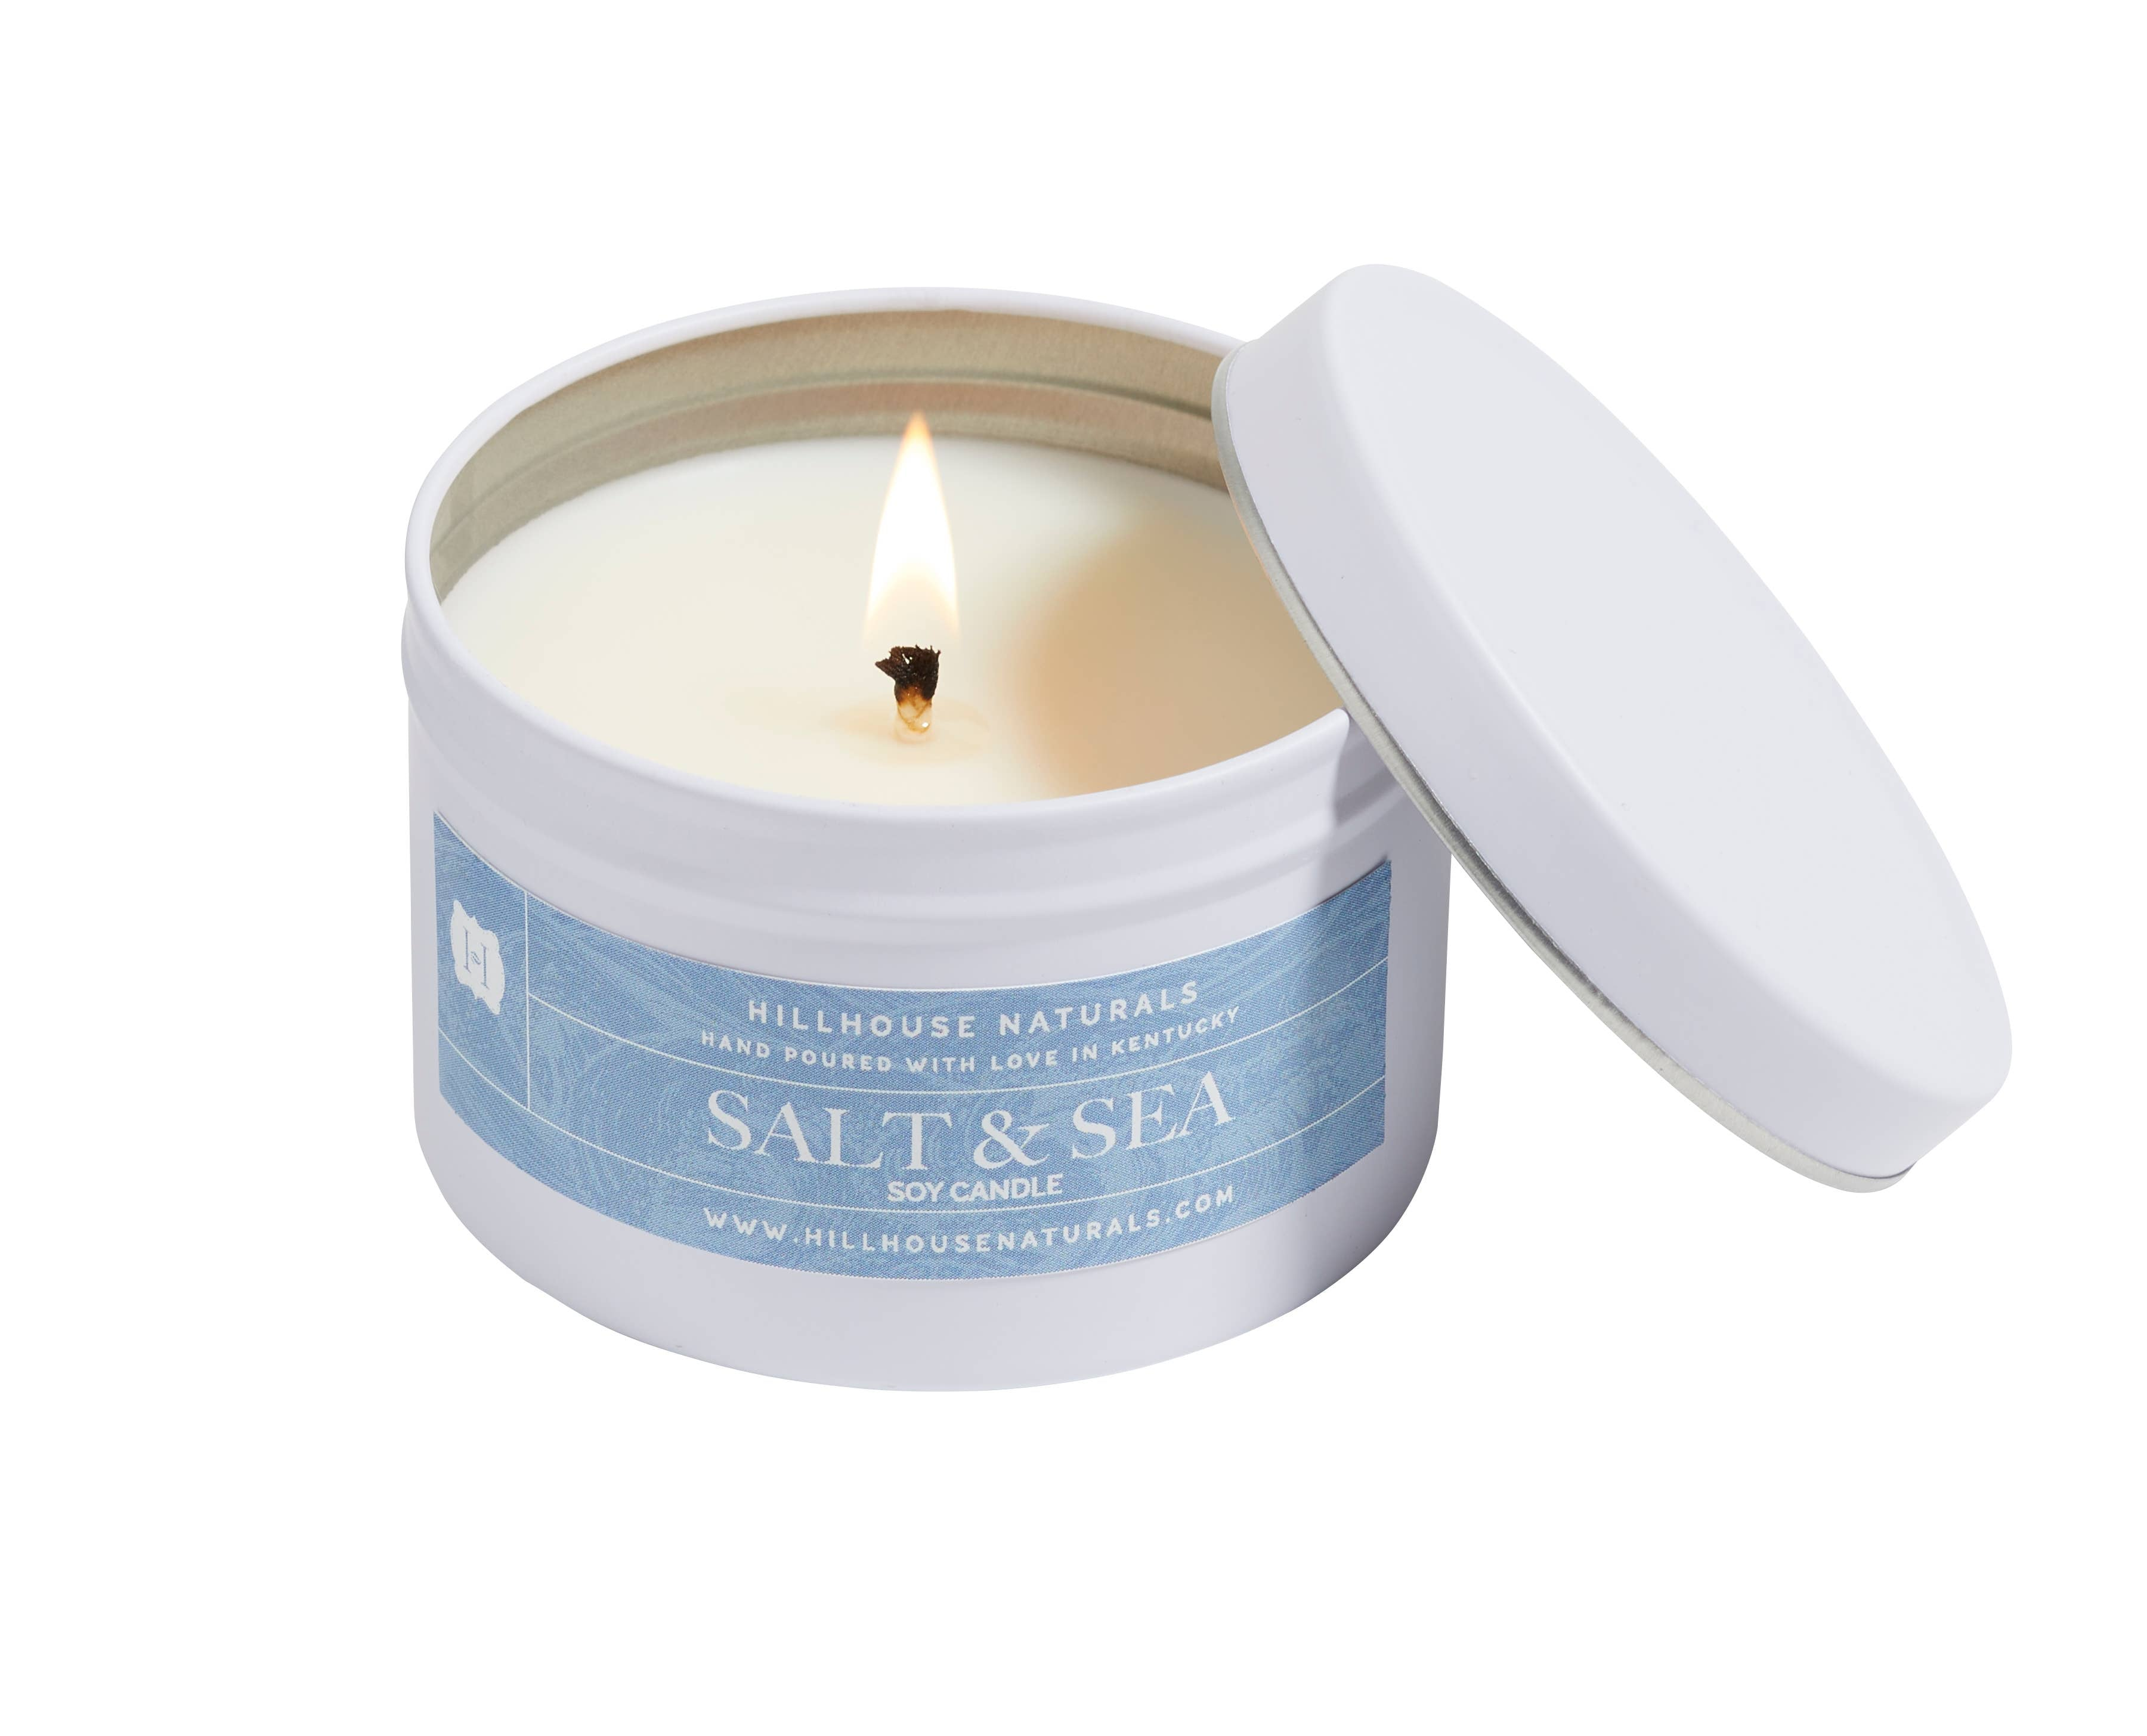 Salt & Sea Candle in White Tin 6oz